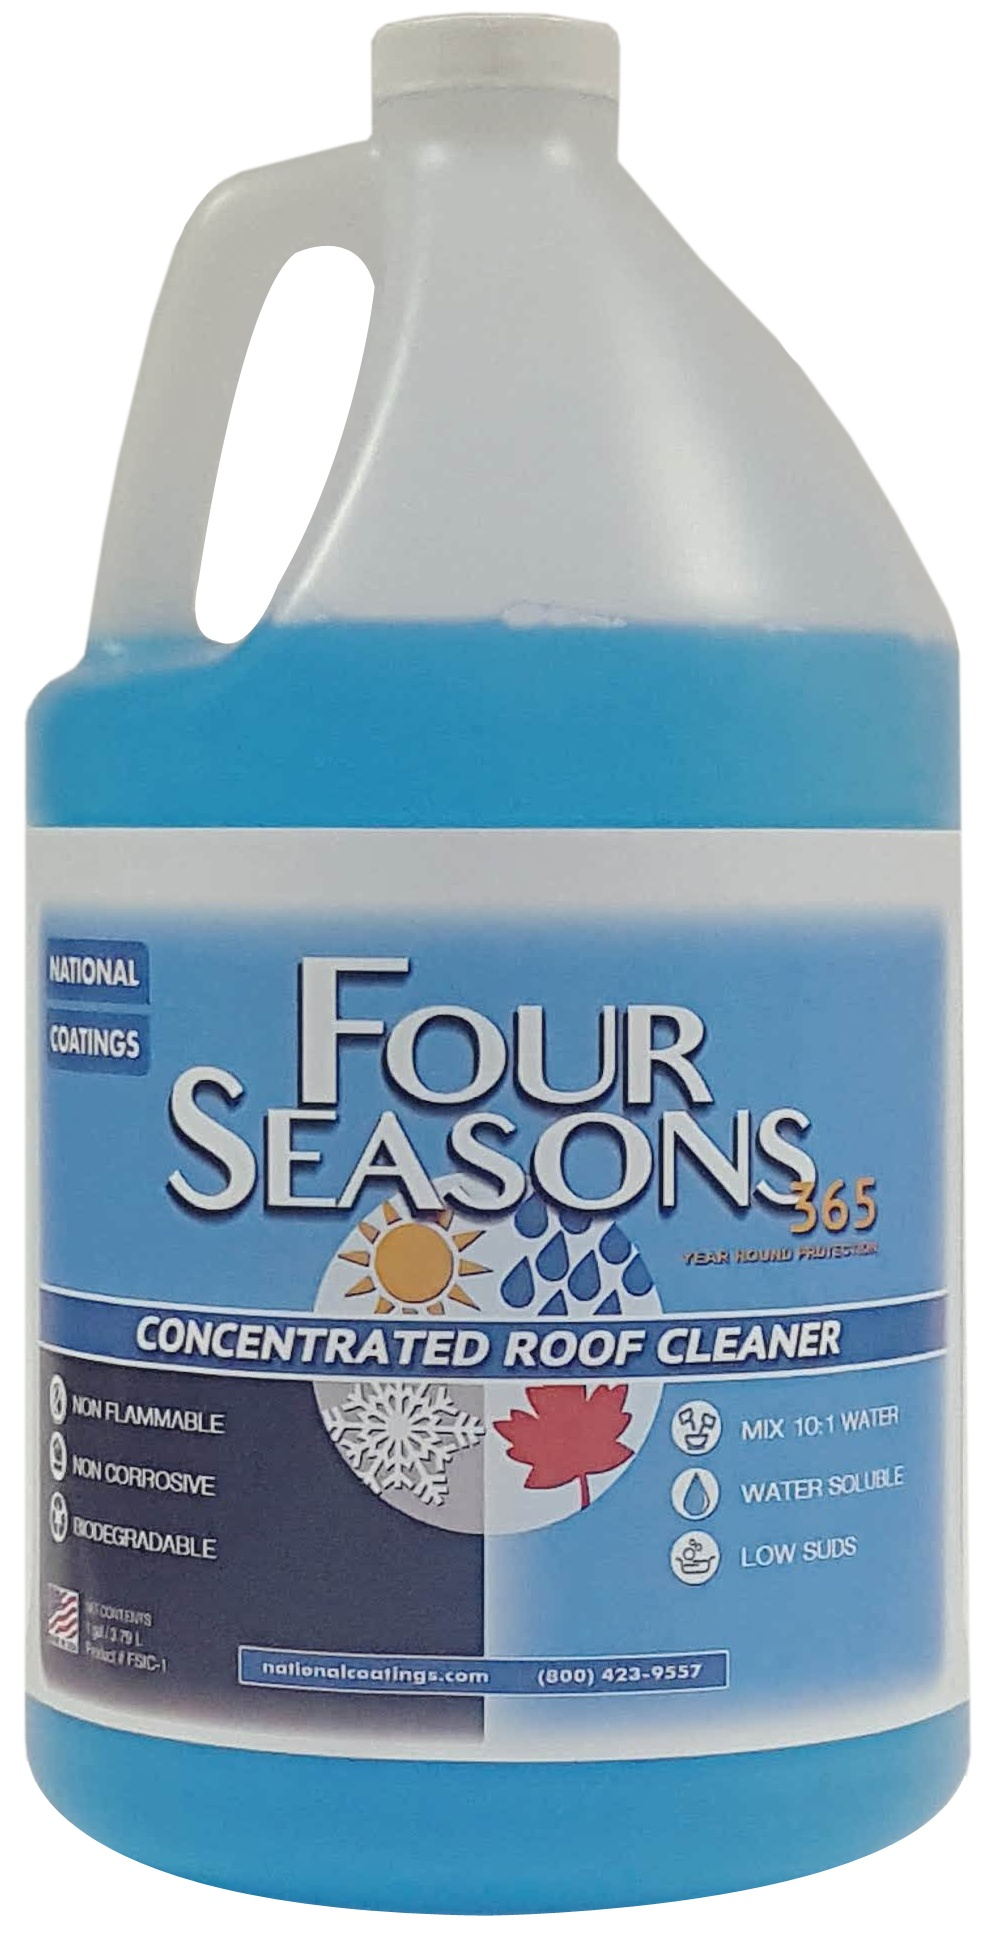 FS Roof Cleaner